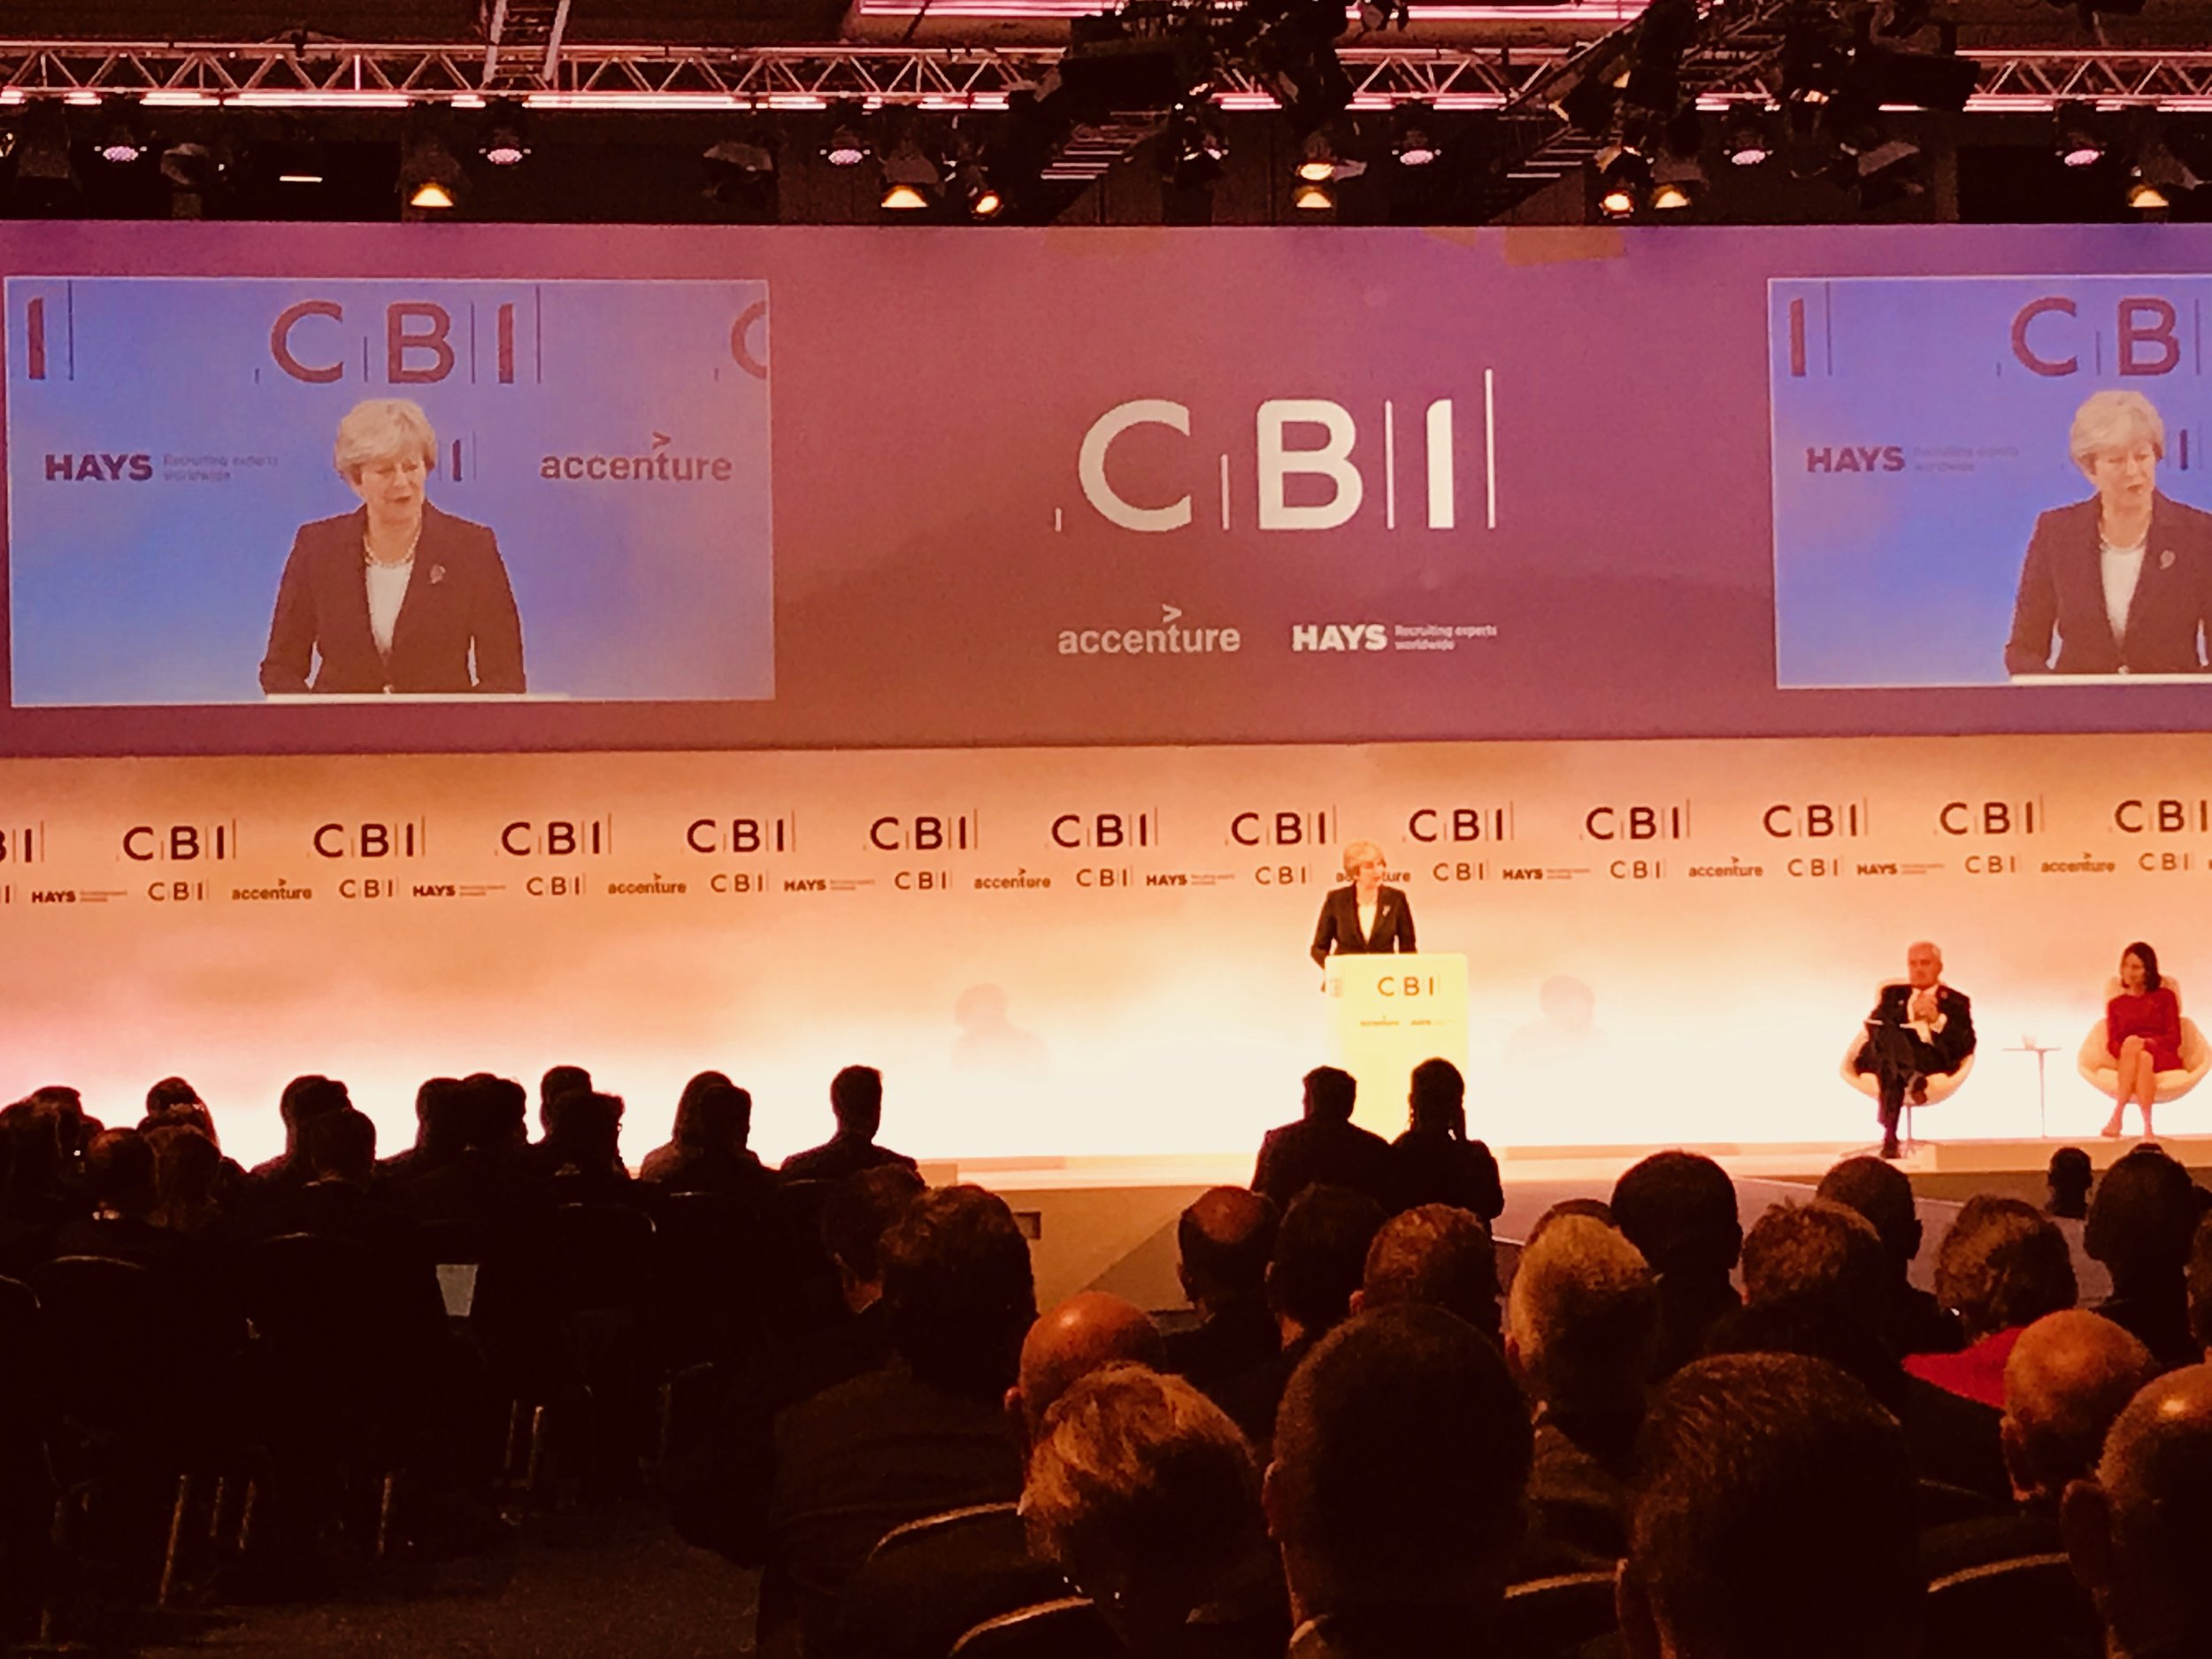 Theresa May, UK Prime Minister, speaking at CBI Conference London November 6, 2017